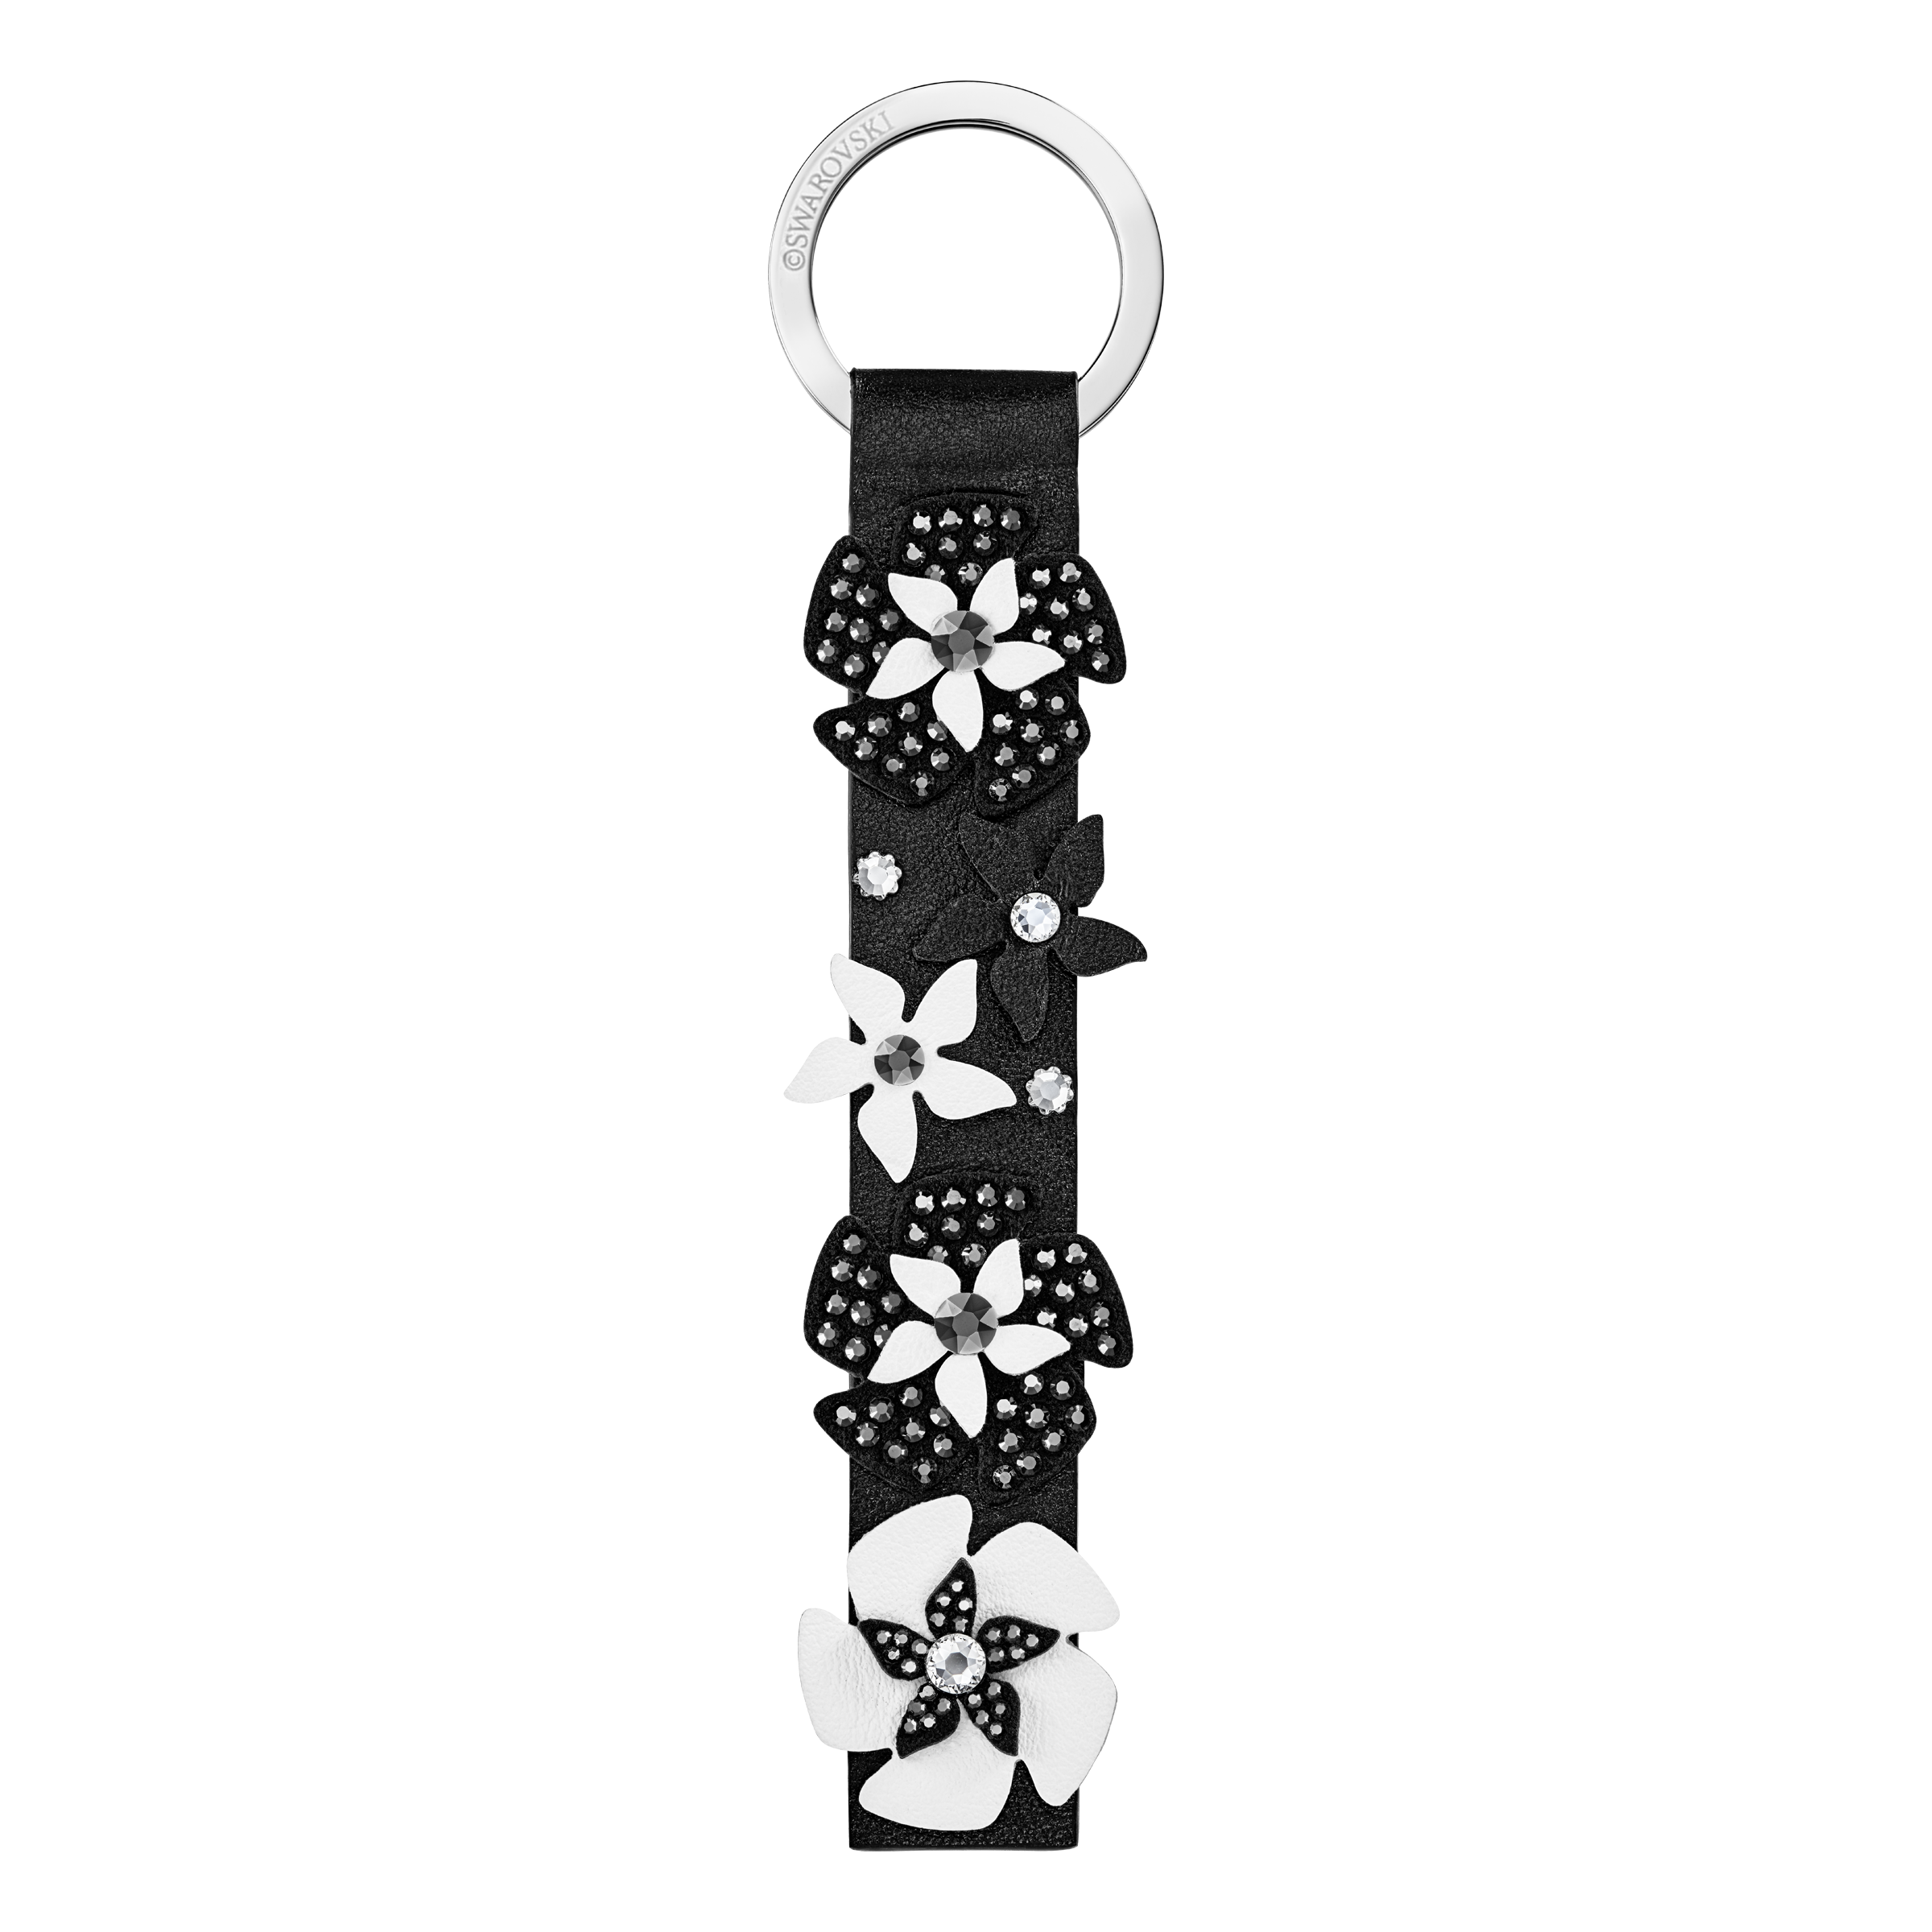 Mazy Key Ring, Black, Stainless Steel